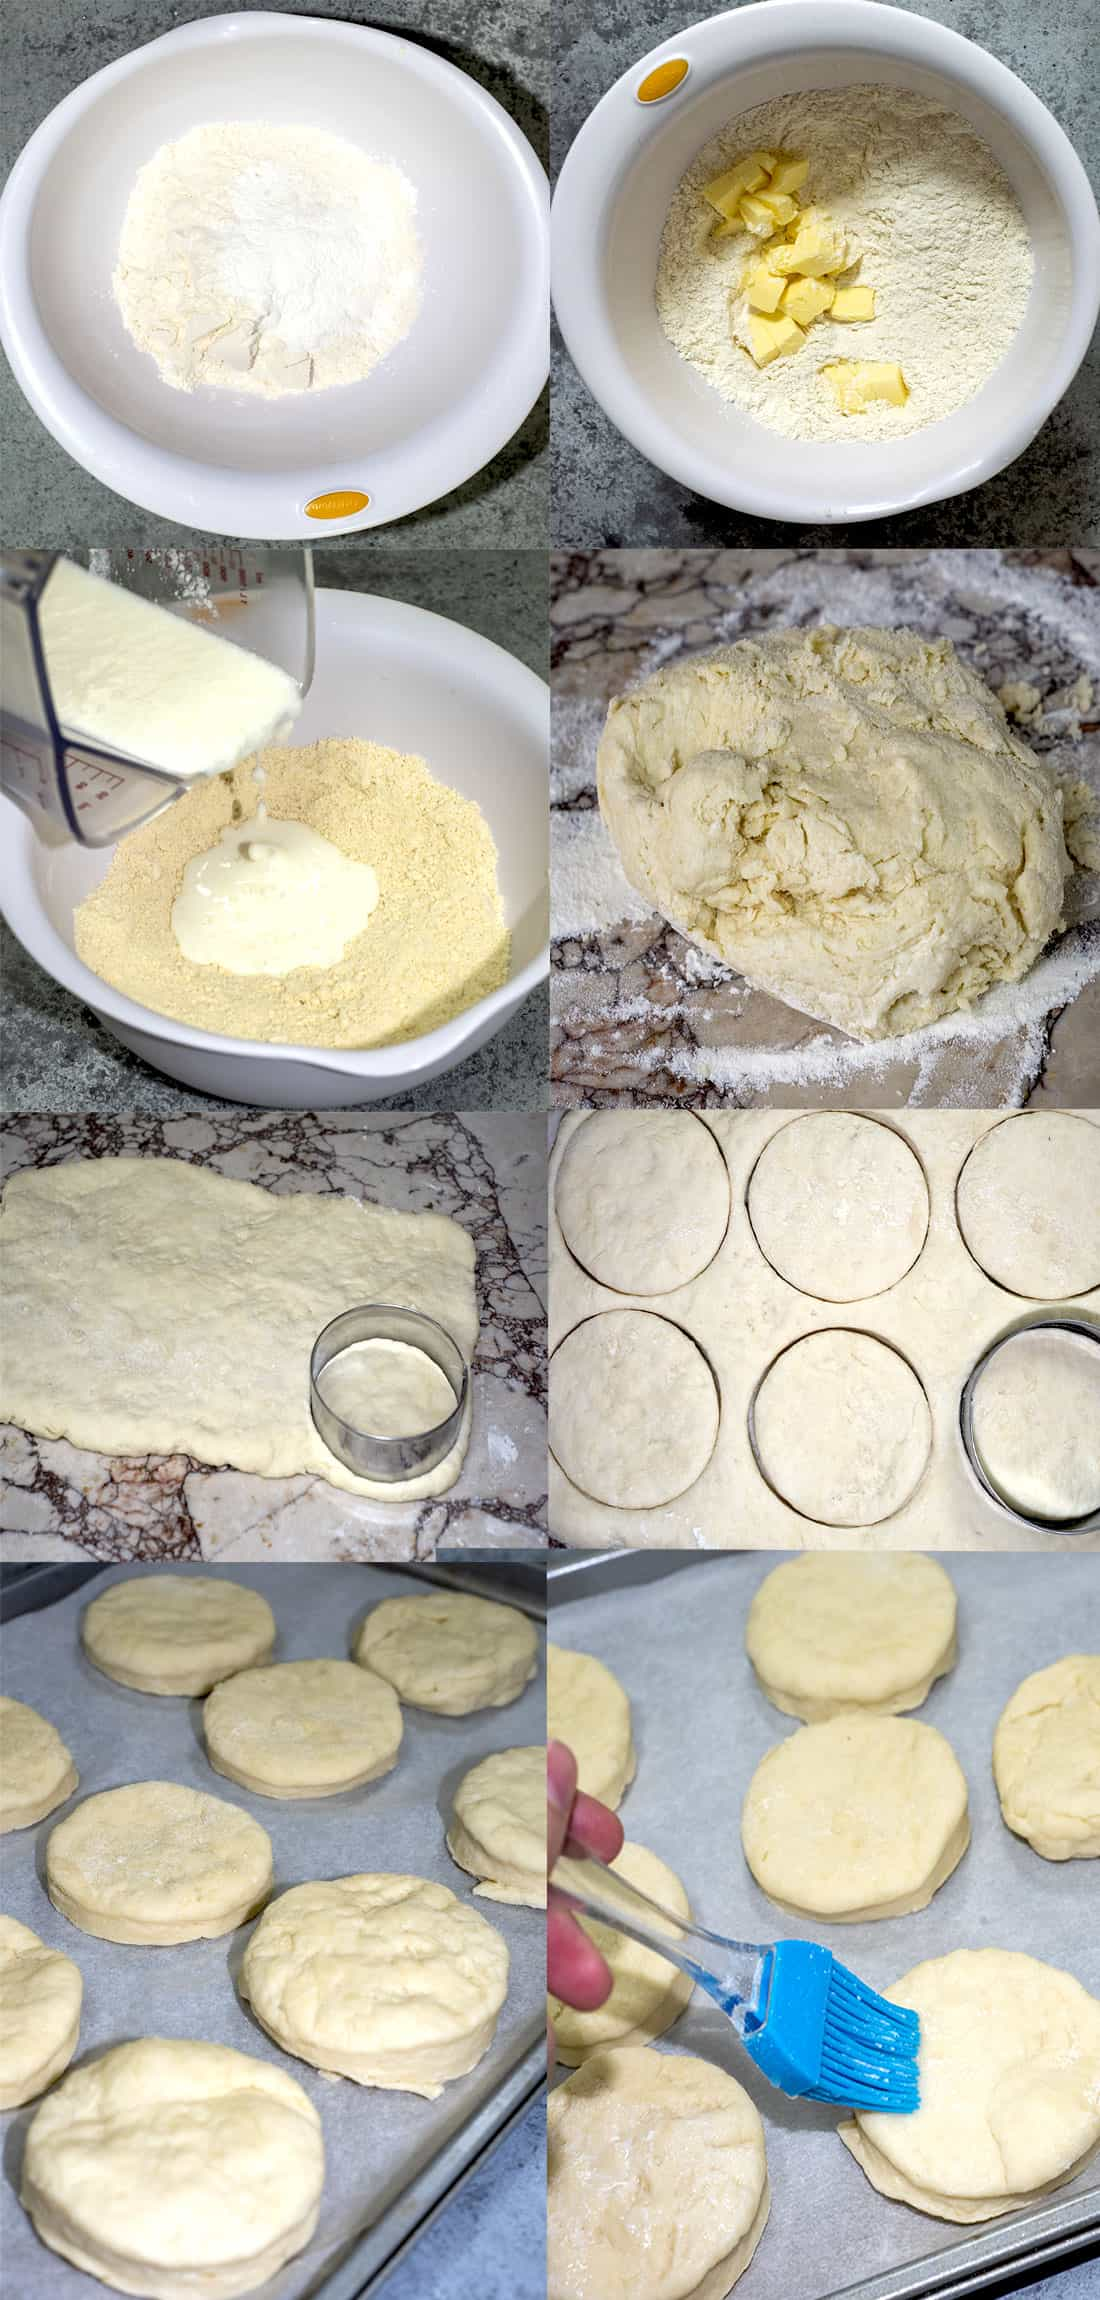 how to make popeyes biscuits